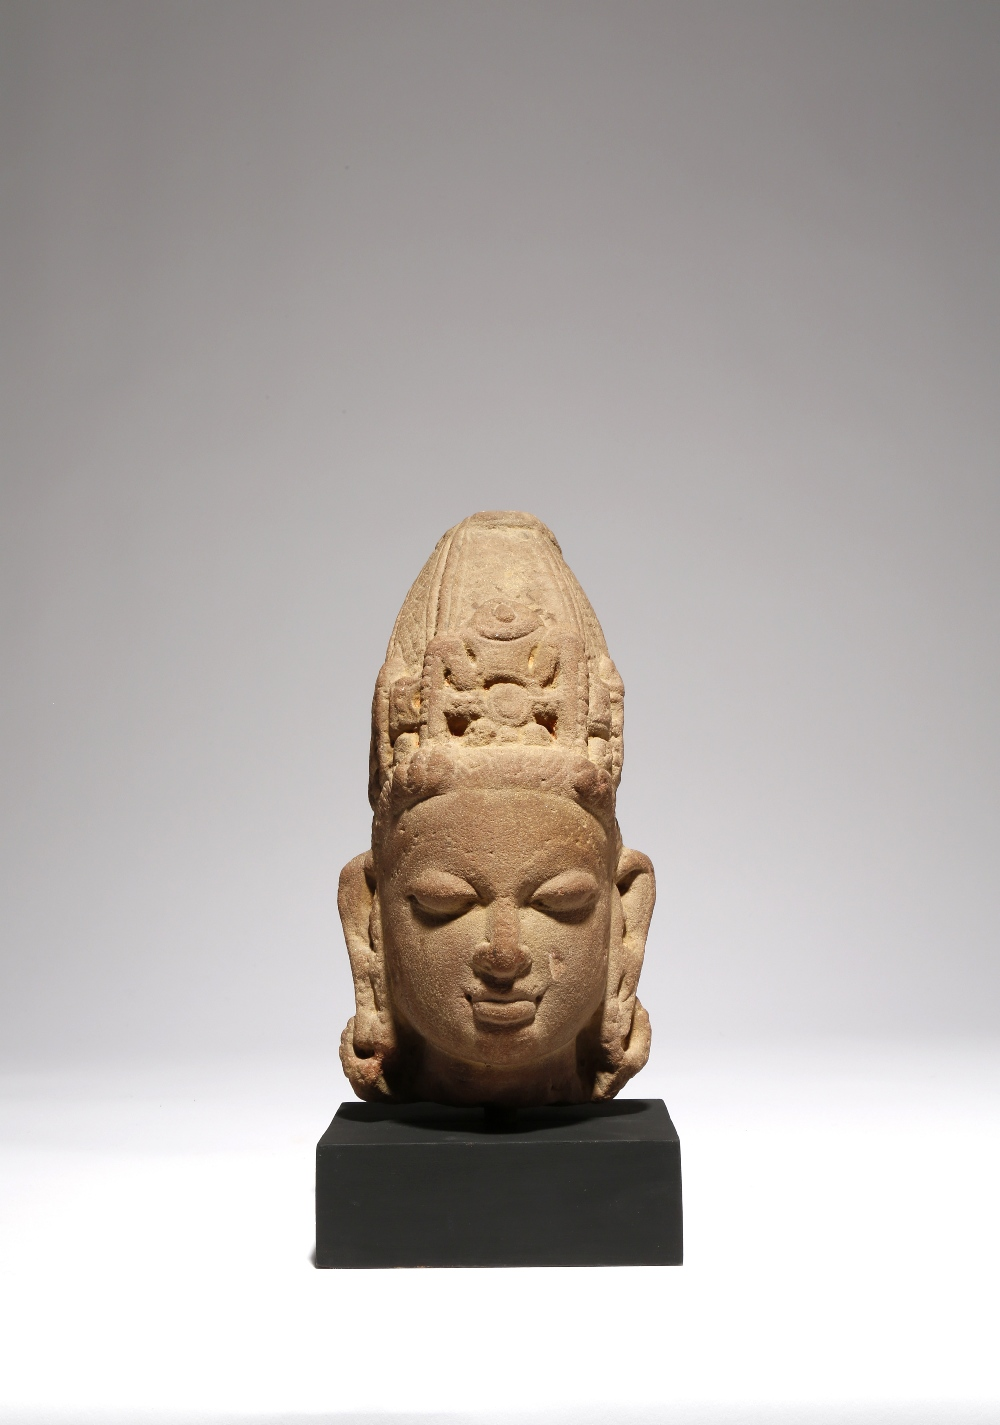 AN INDIAN RED SANDSTONE CARVING OF THE HEAD OF A DEITY C.11TH CENTURY Probably Rajasthan, his serene